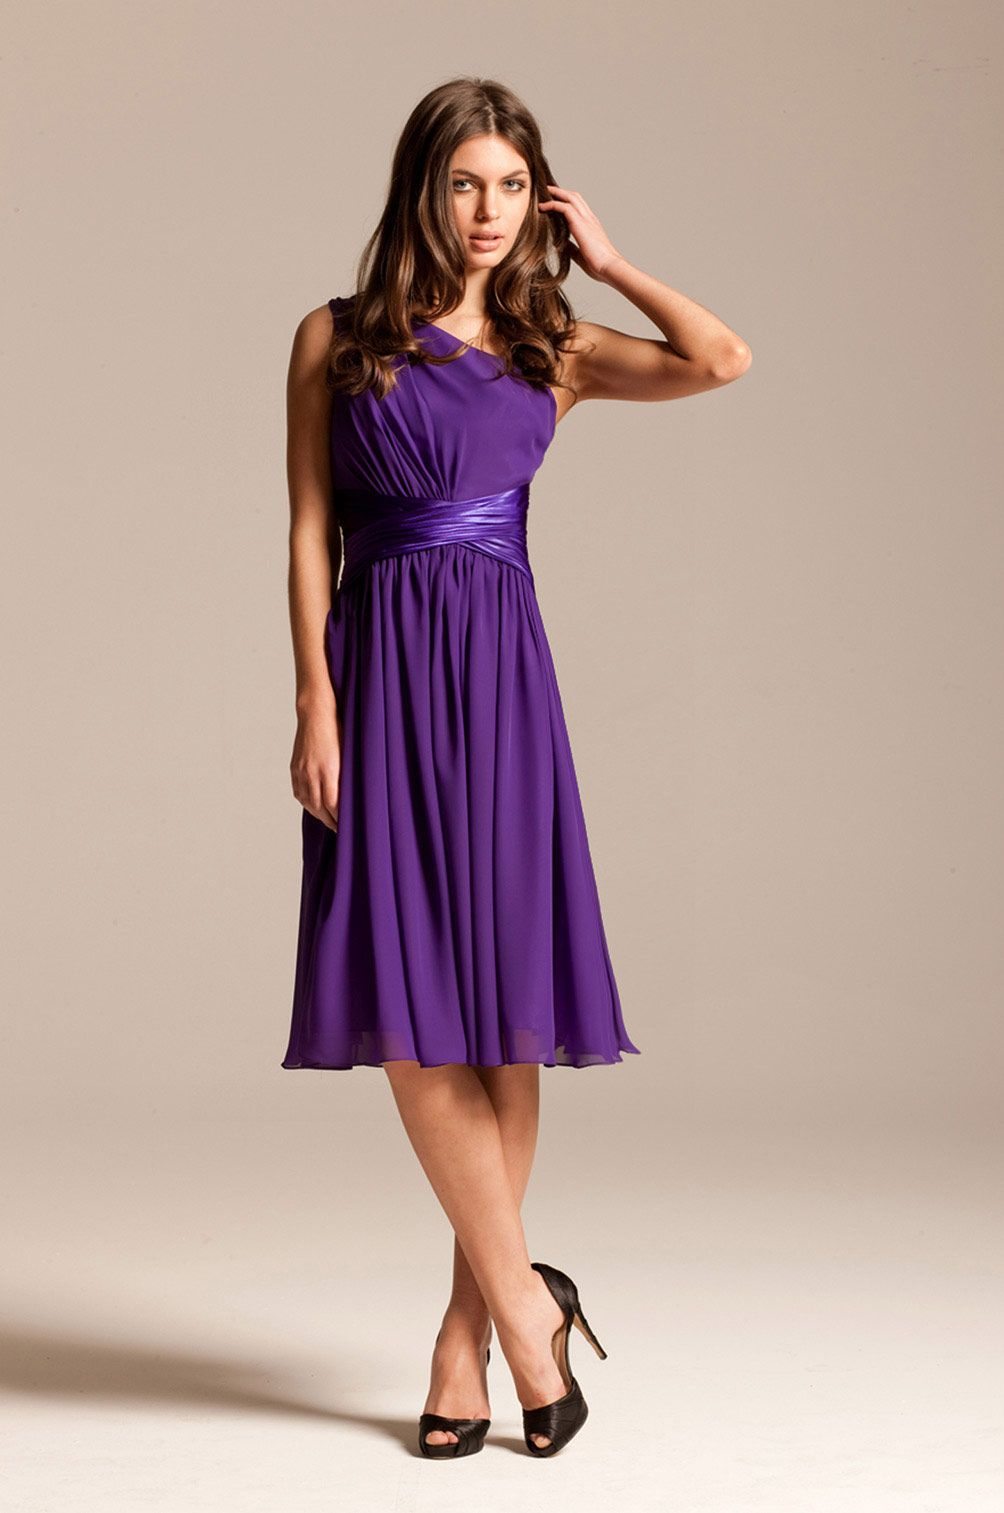 Purple-One-Shoulder-Cocktail-Dress- | Purple Cocktail Dress ...